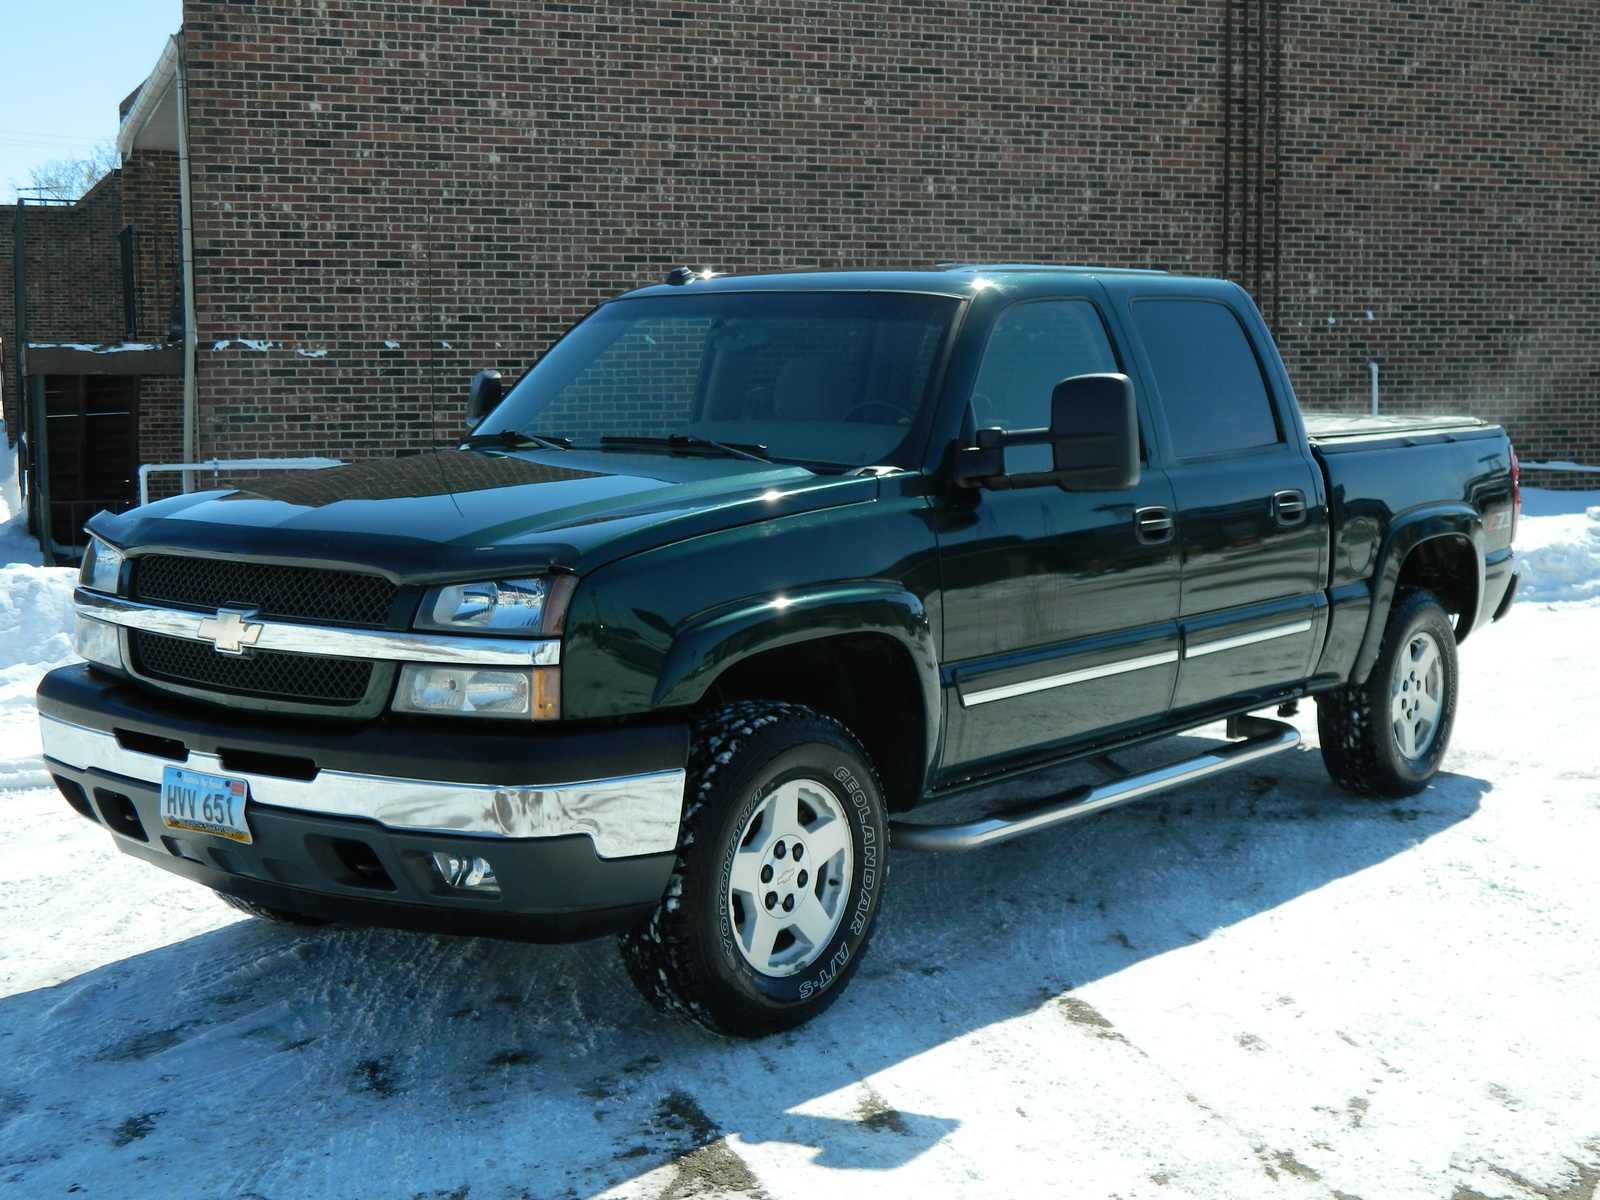 2005 chevrolet silverado 1500 pictures cargurus. Black Bedroom Furniture Sets. Home Design Ideas